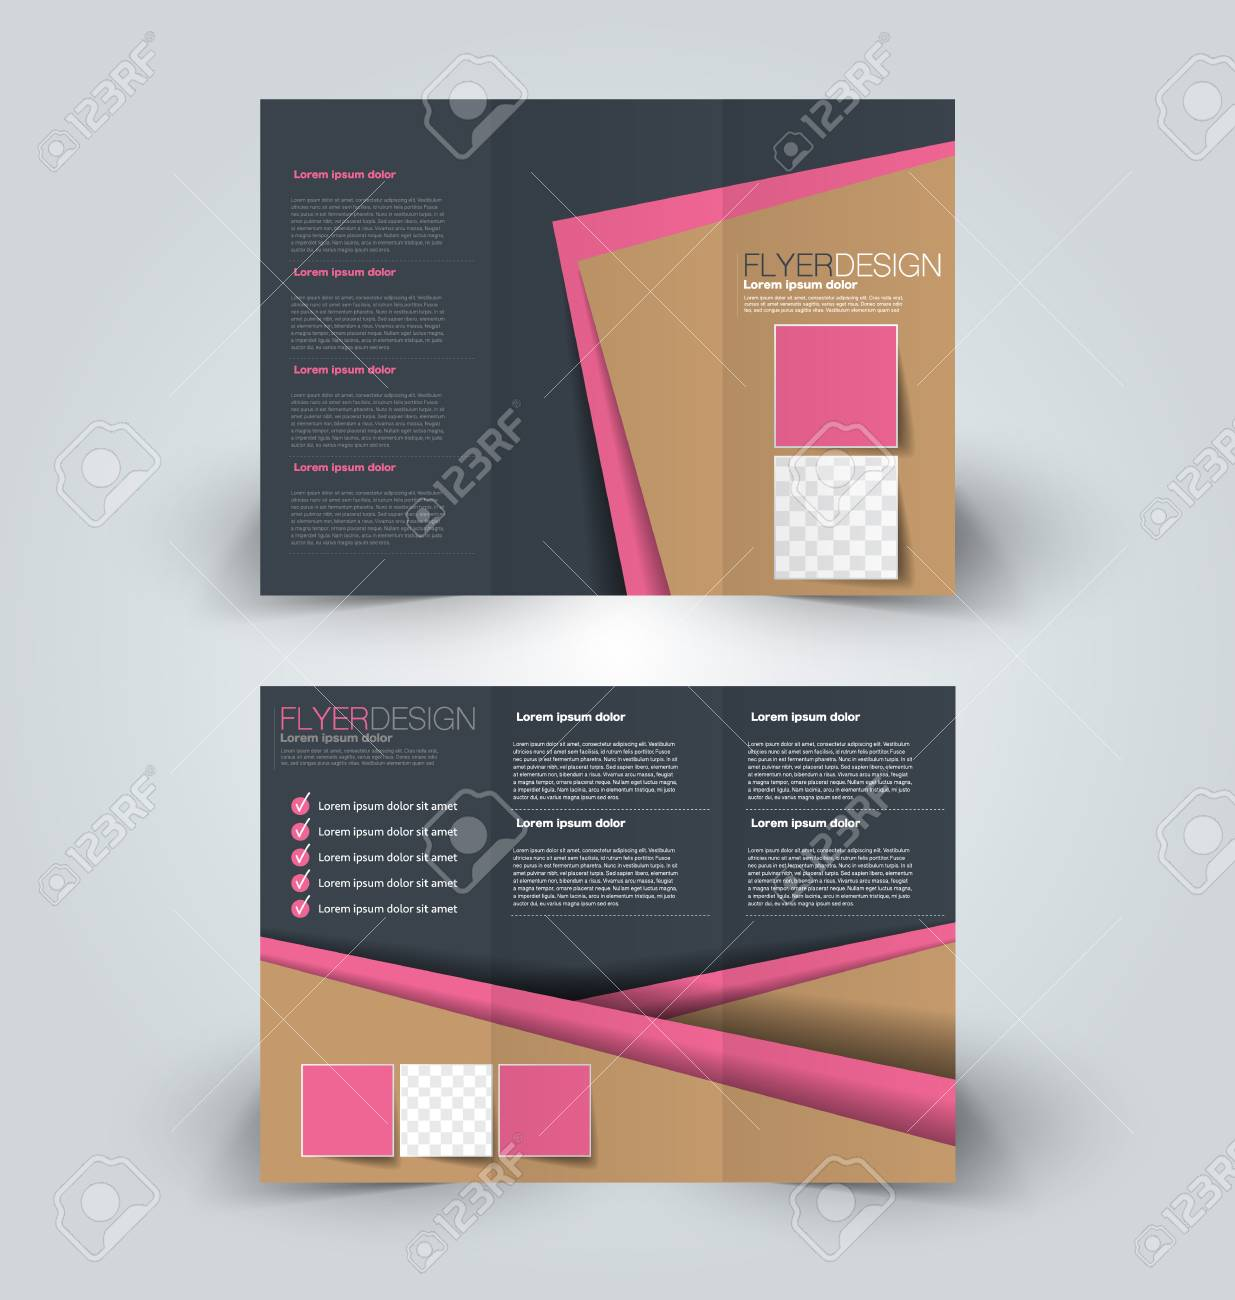 Tri Fold Brochure Design Creative Business Flyer Template Editable Vector Illustration Brown And